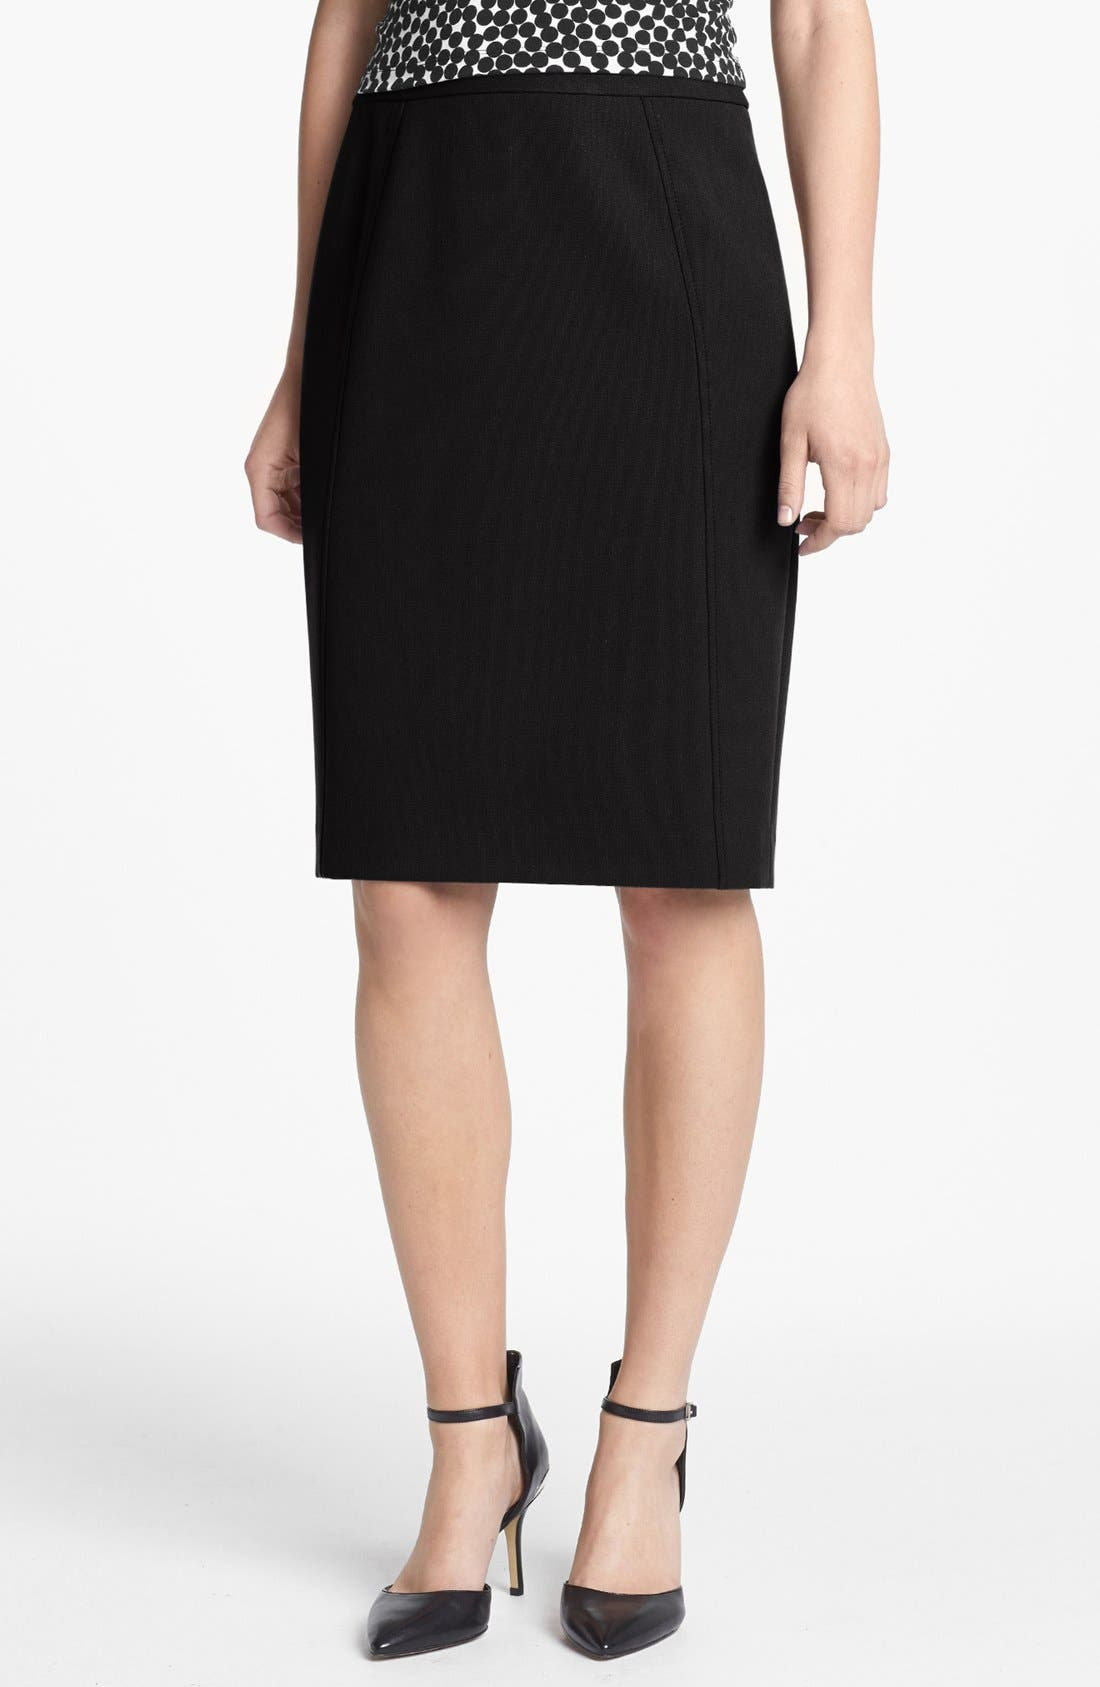 Alternate Image 1 Selected - Halogen® Seamed Pencil Skirt (Regular & Petite)